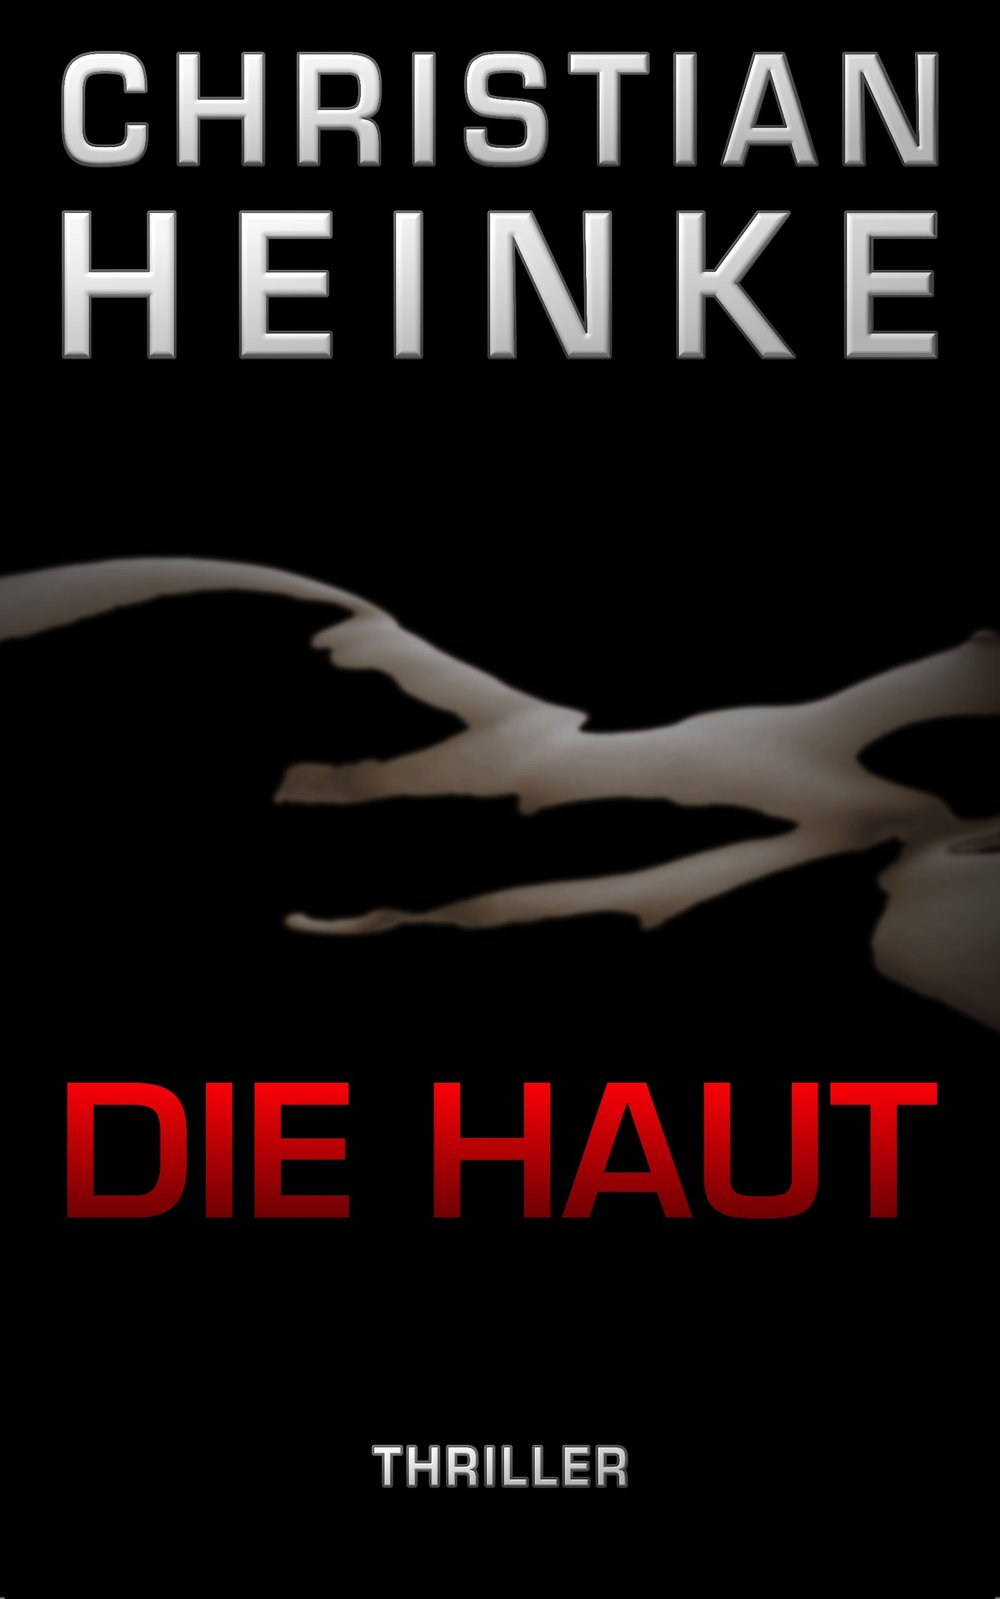 die-haut-kdp-kindle-cover.jpg